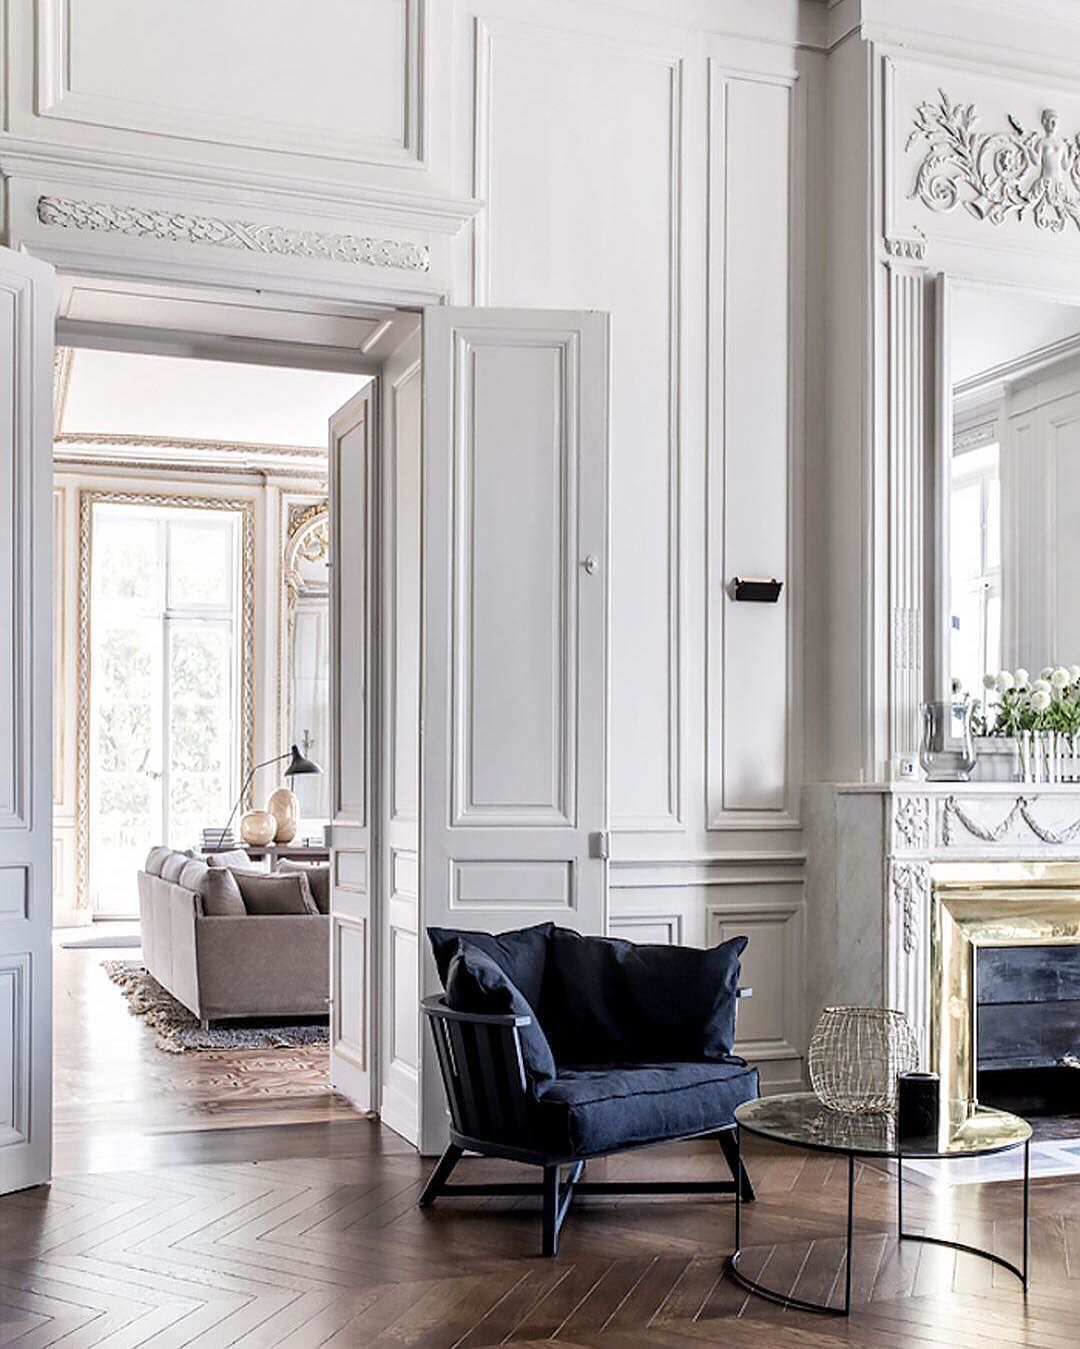 Paris apartment interiors 222 stili di casa for Siti design interni